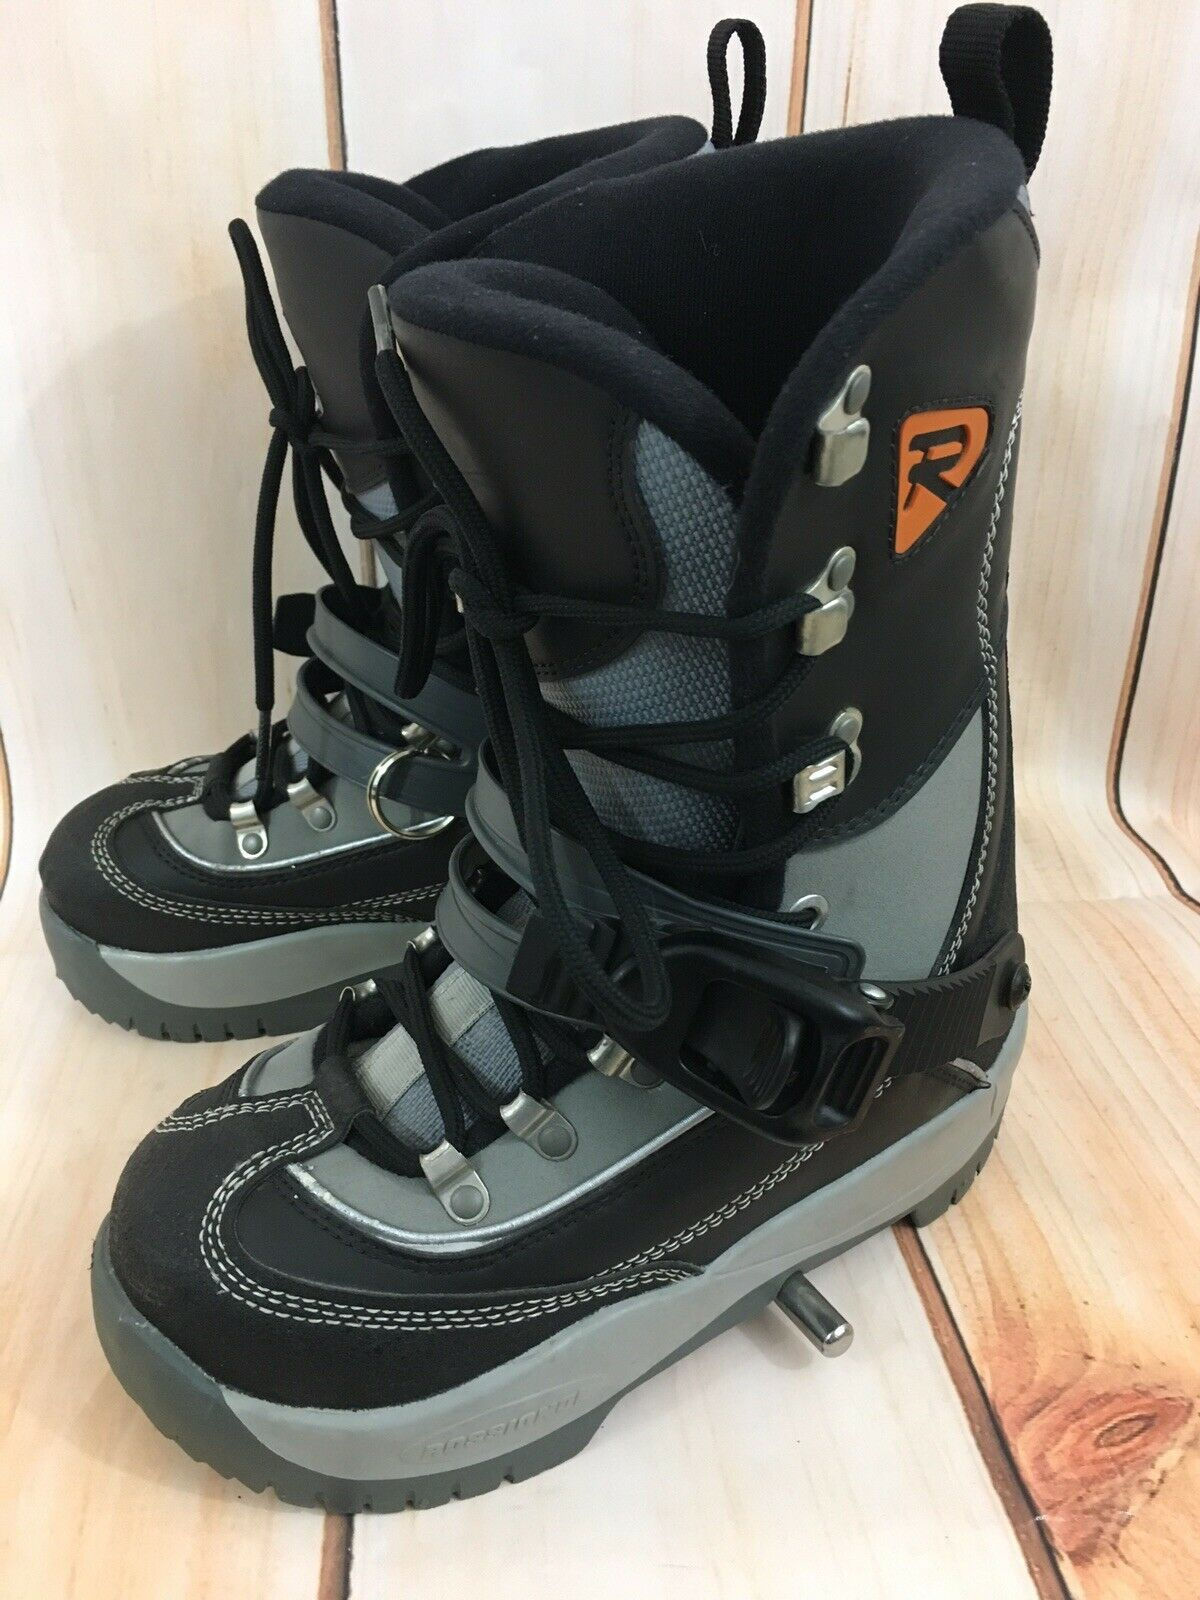 Rossignol SIS Emery Step In Snowboard Boots Sz 24 EUR Men's 5 US Women's 6 US